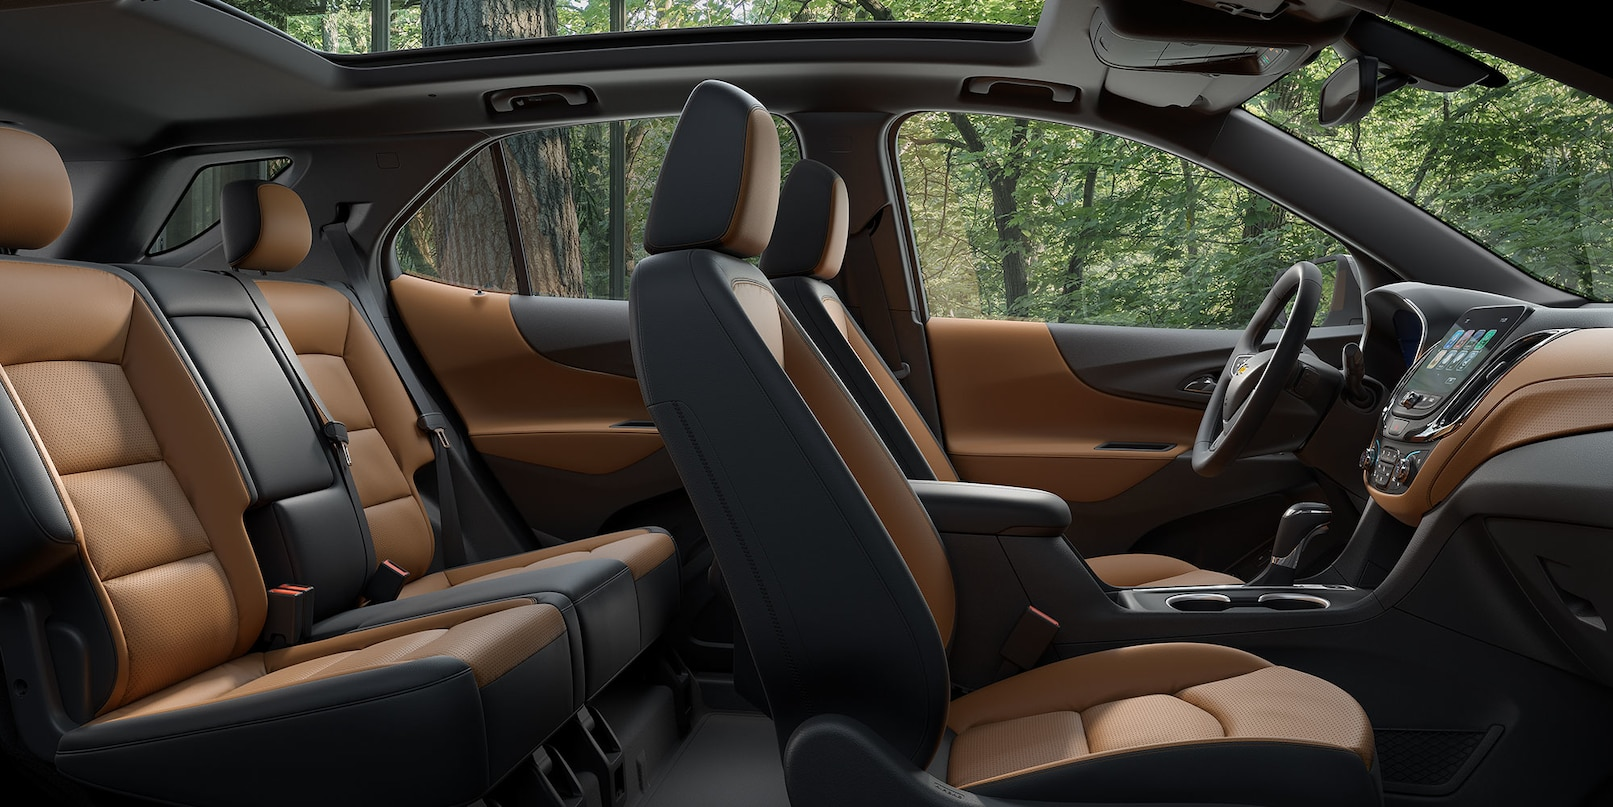 Enjoy the Ride in the Chevy Equinox